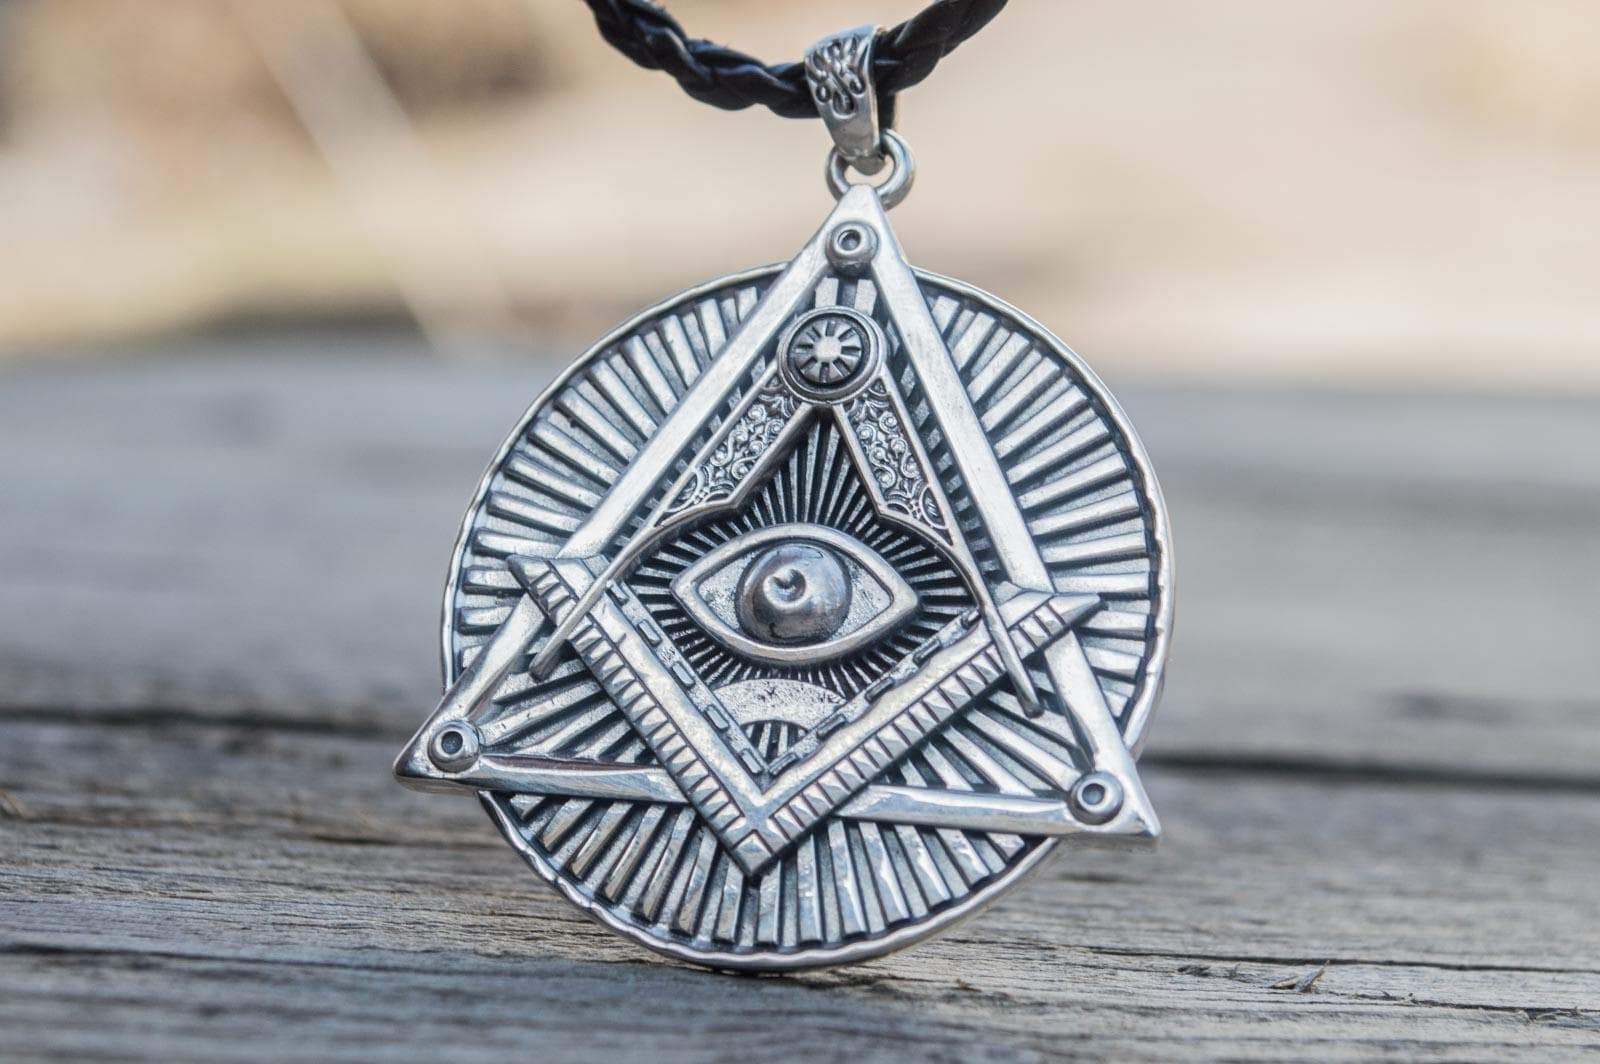 Pendants & Necklaces Freemason Square & Compass Eye of Providence Sterling Silver Pendant Ancient Treasures Ancientreasures Viking Odin Thor Mjolnir Celtic Ancient Egypt Norse Norse Mythology